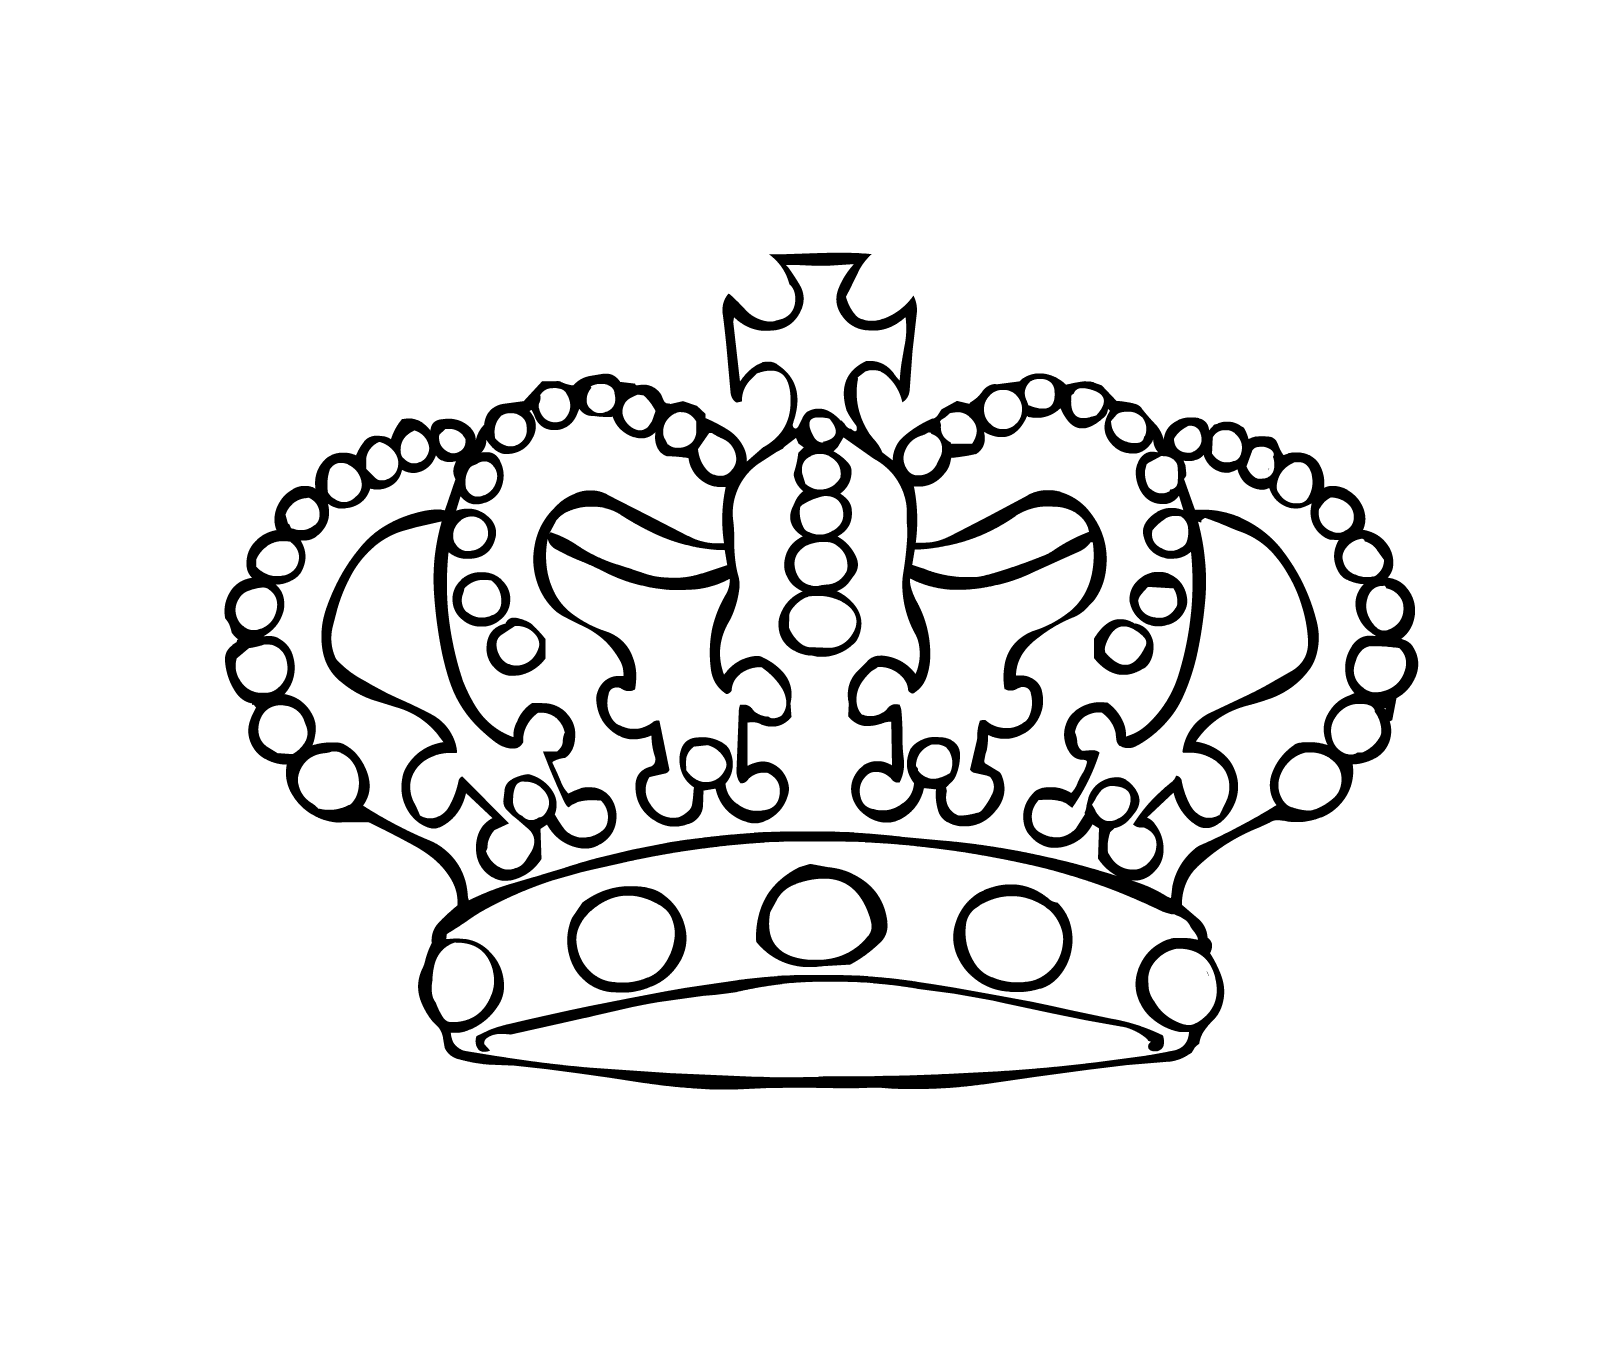 Free Crown Outline Download Free Clip Art Free Clip Art